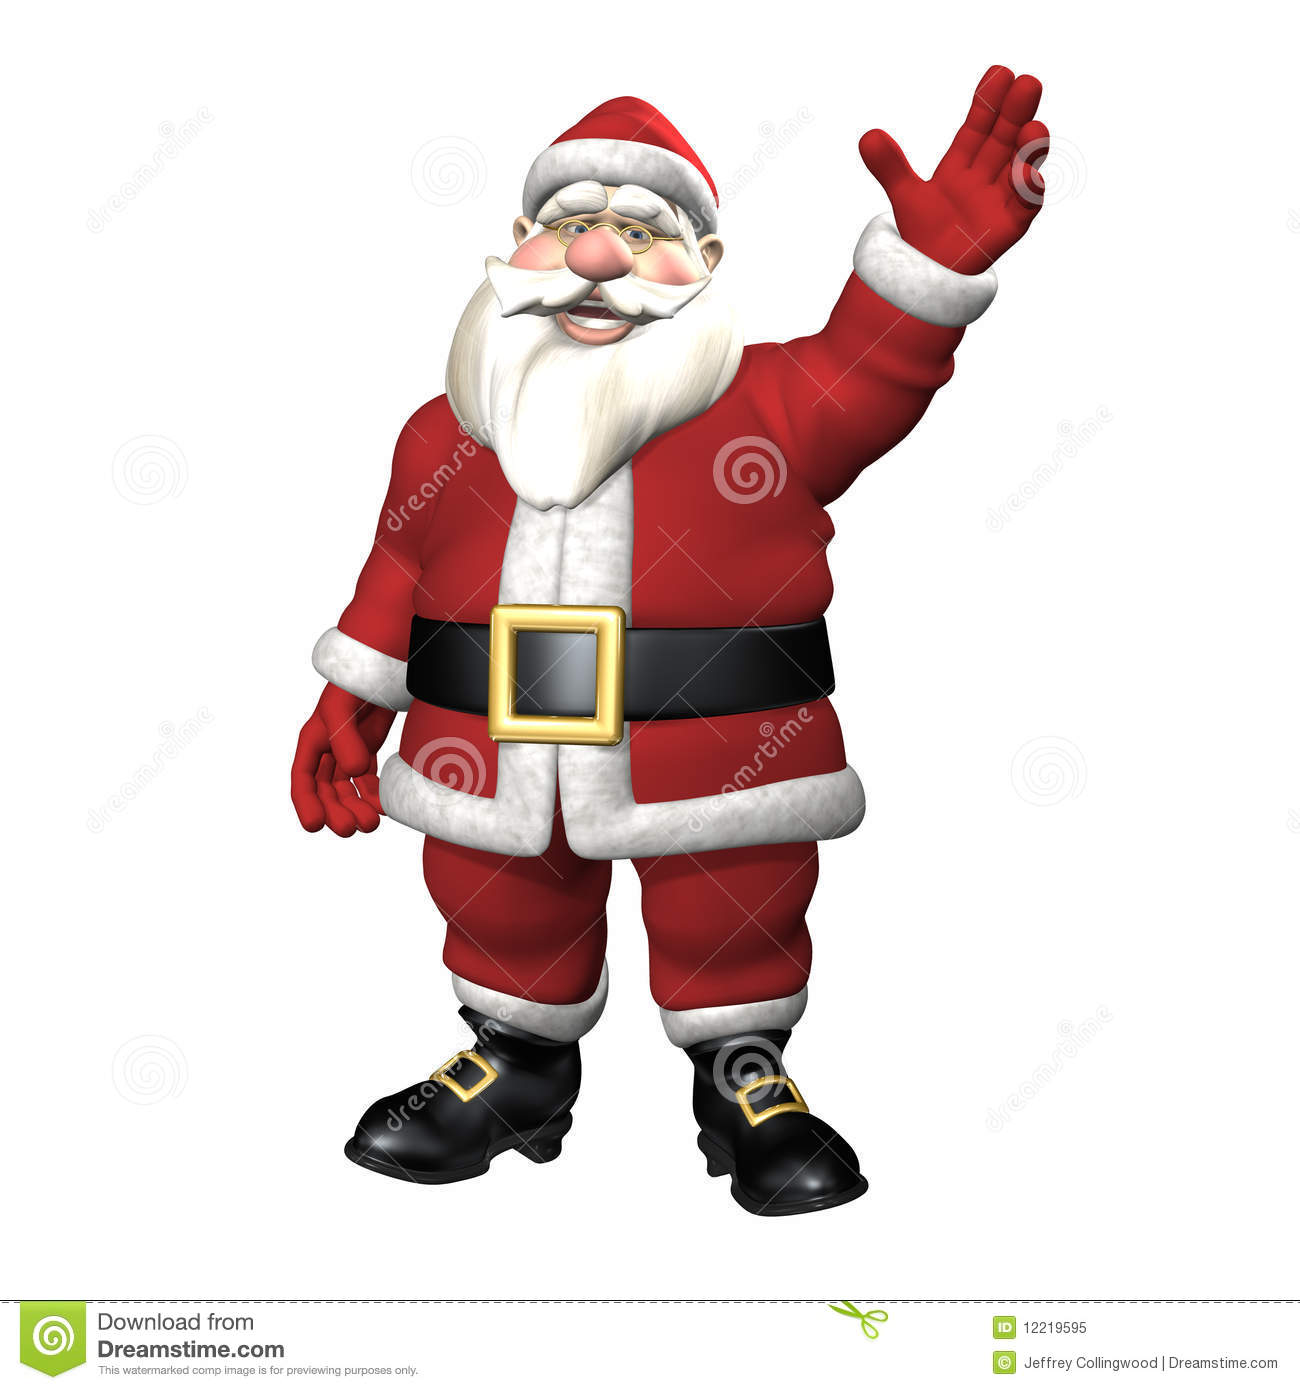 Santa waving royalty free stock photo image